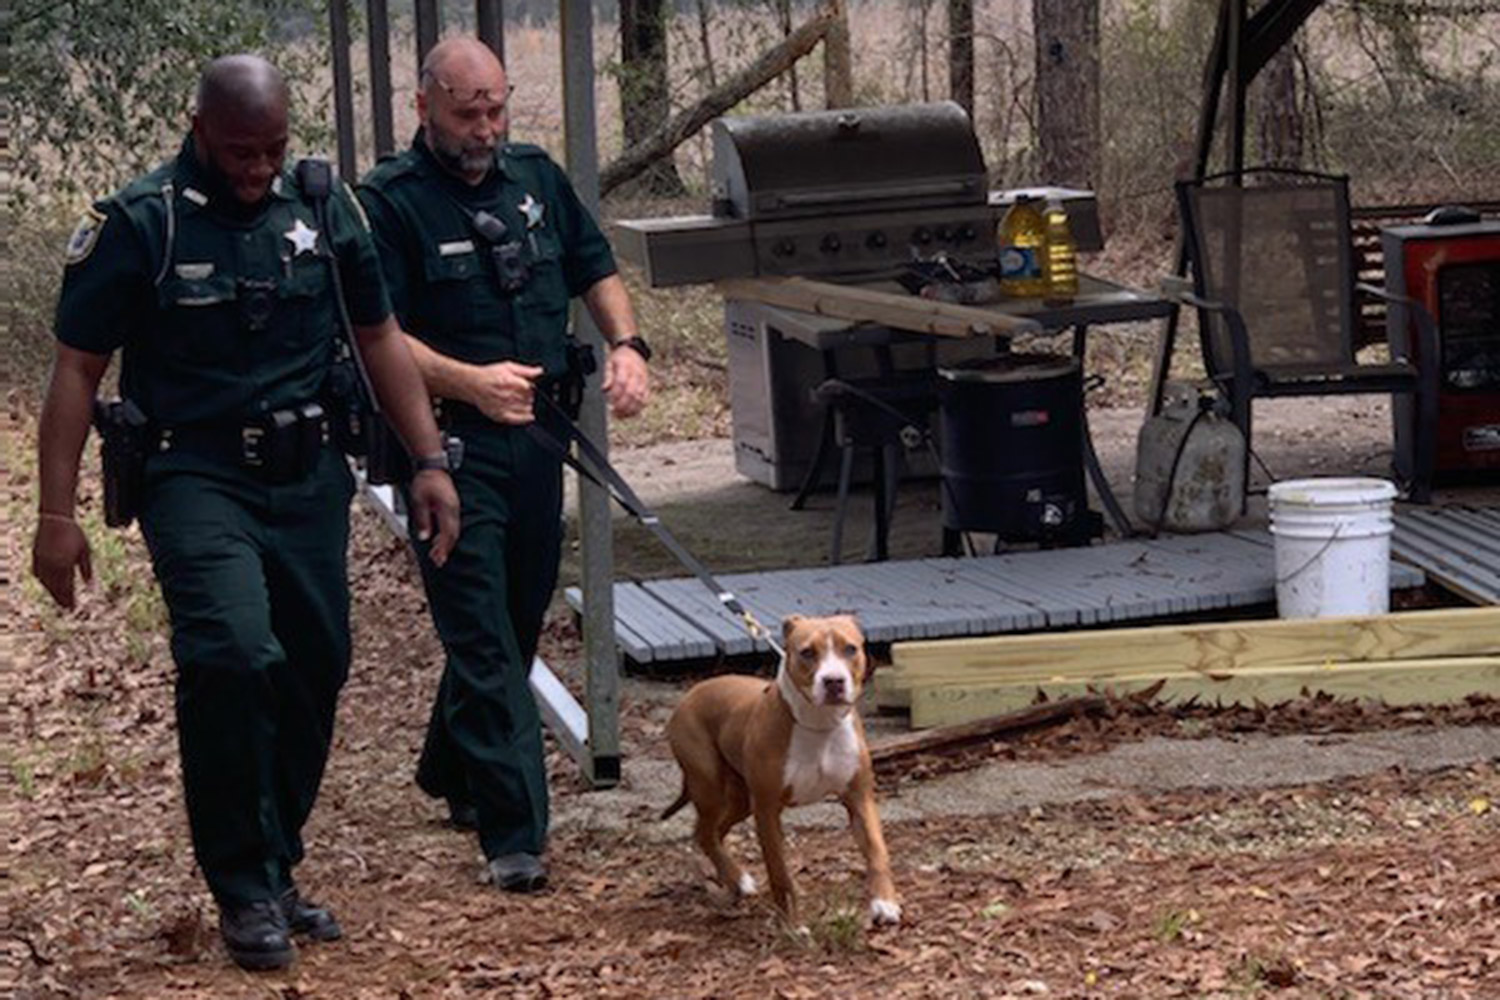 Buddy the pit bull with Suwannee County Sheriff's Office Police